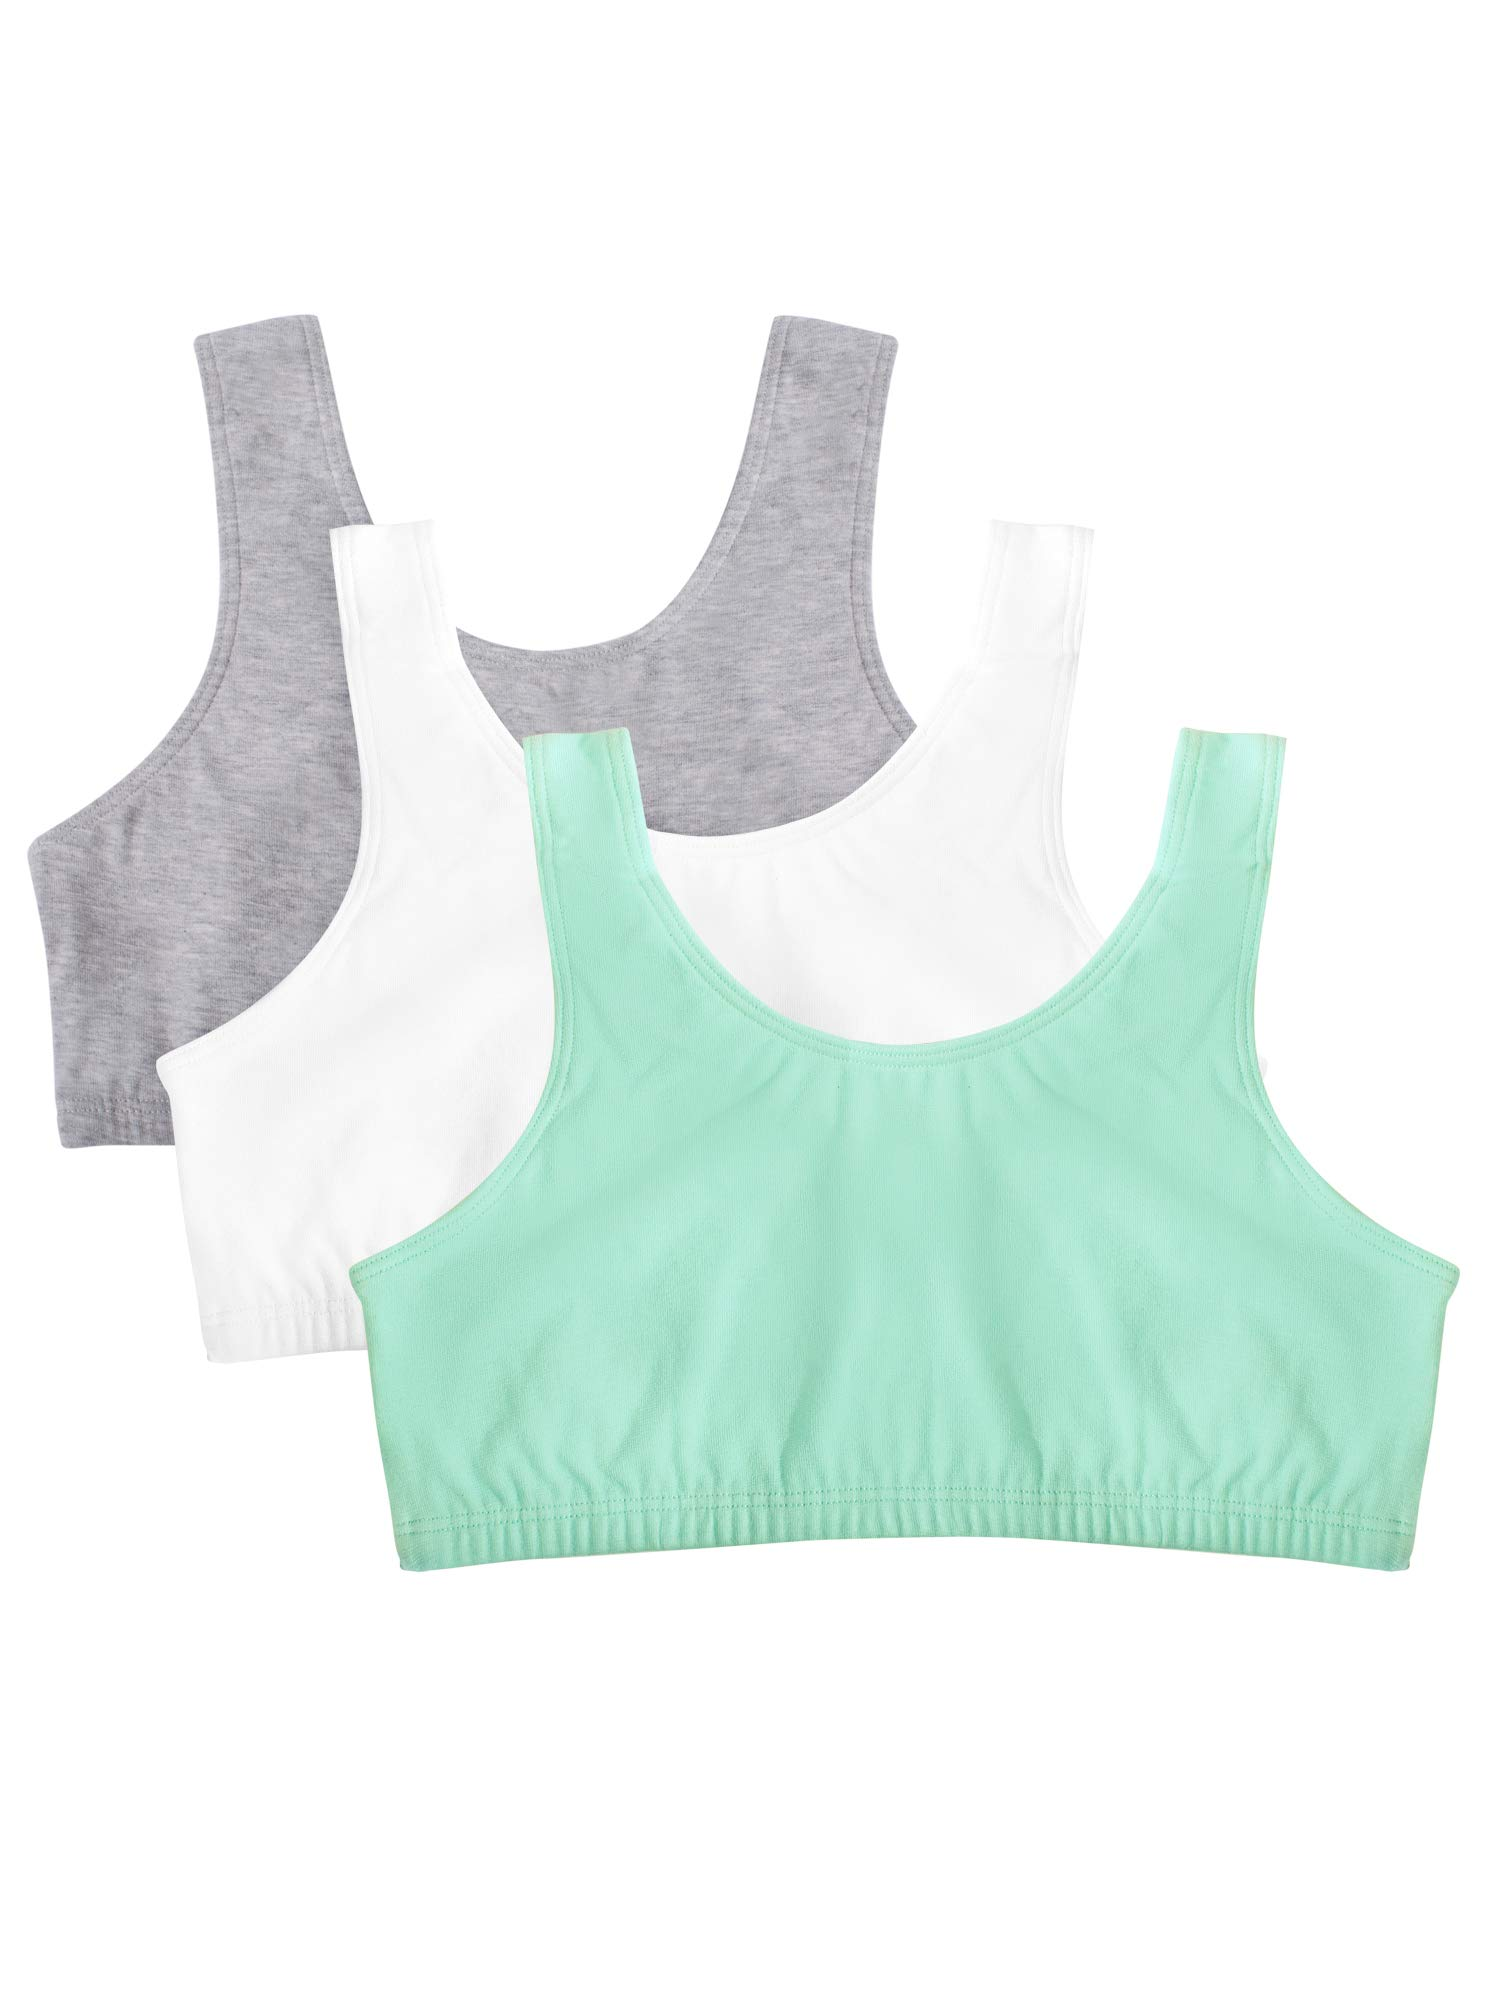 Fruit of the Loom Women's Built-Up Sports Bra 3 Pack Bra, Mint chip/White/Grey Heather, 34